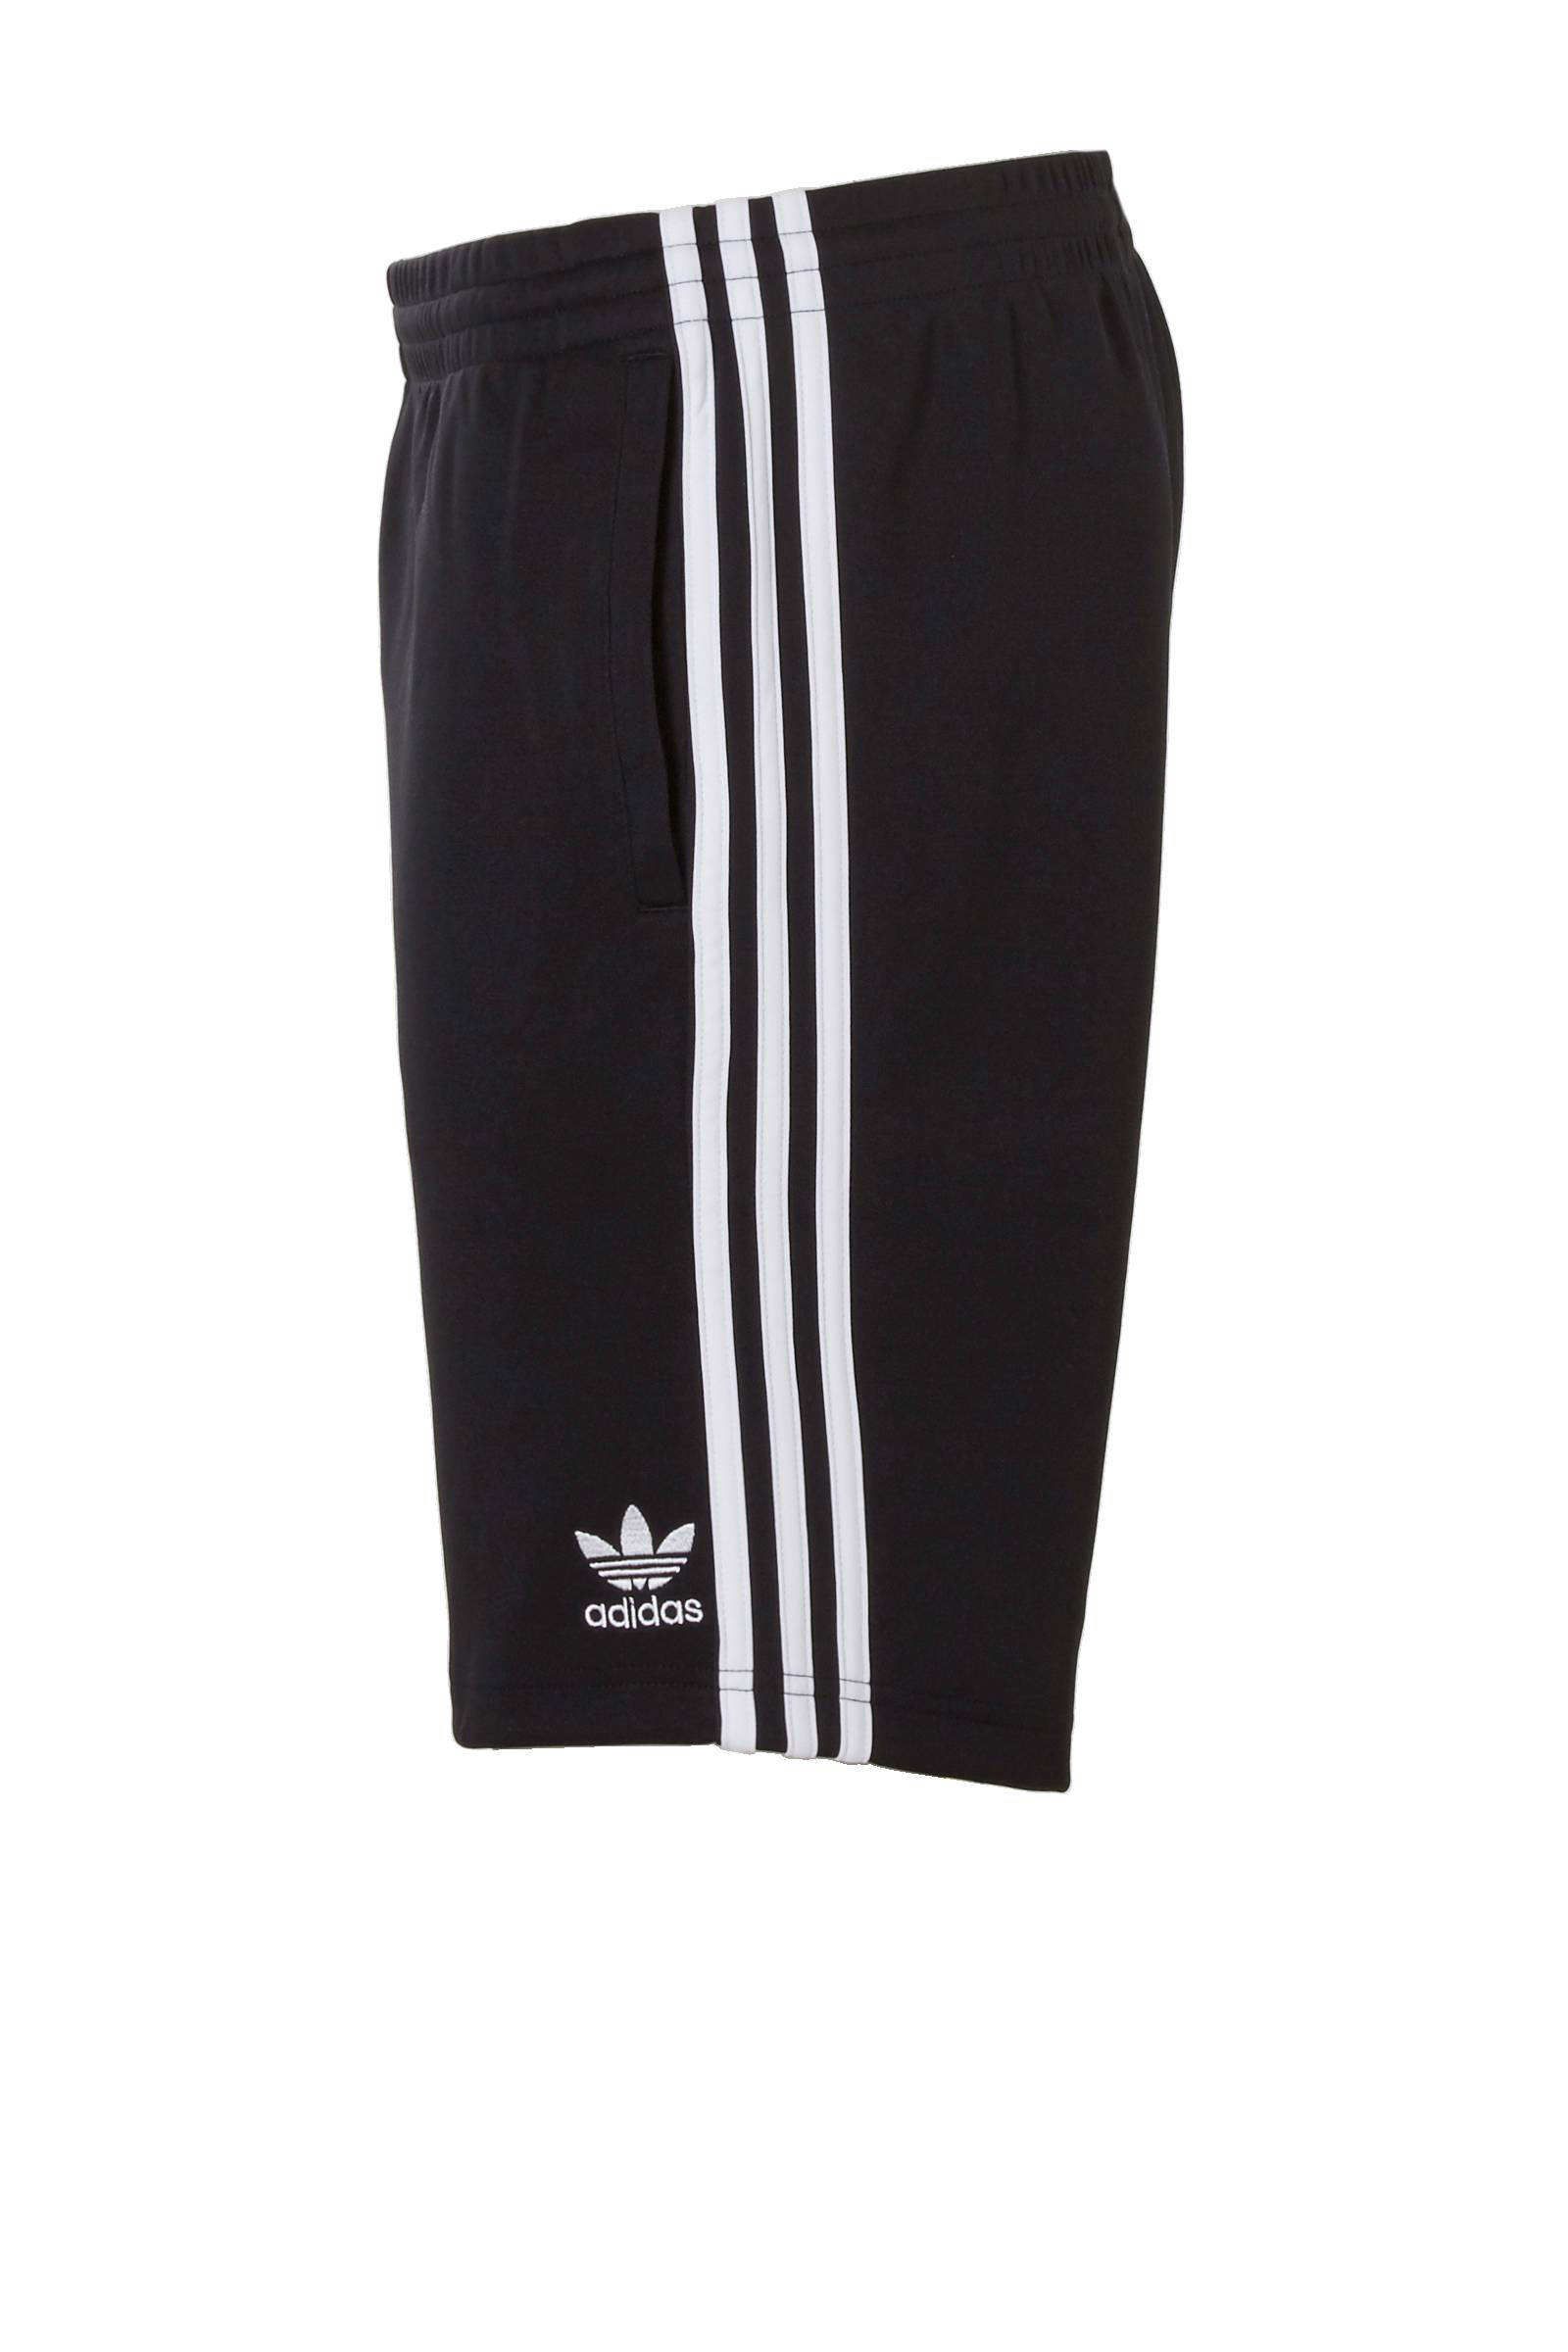 adidas originals adidas Originals short | wehkamp